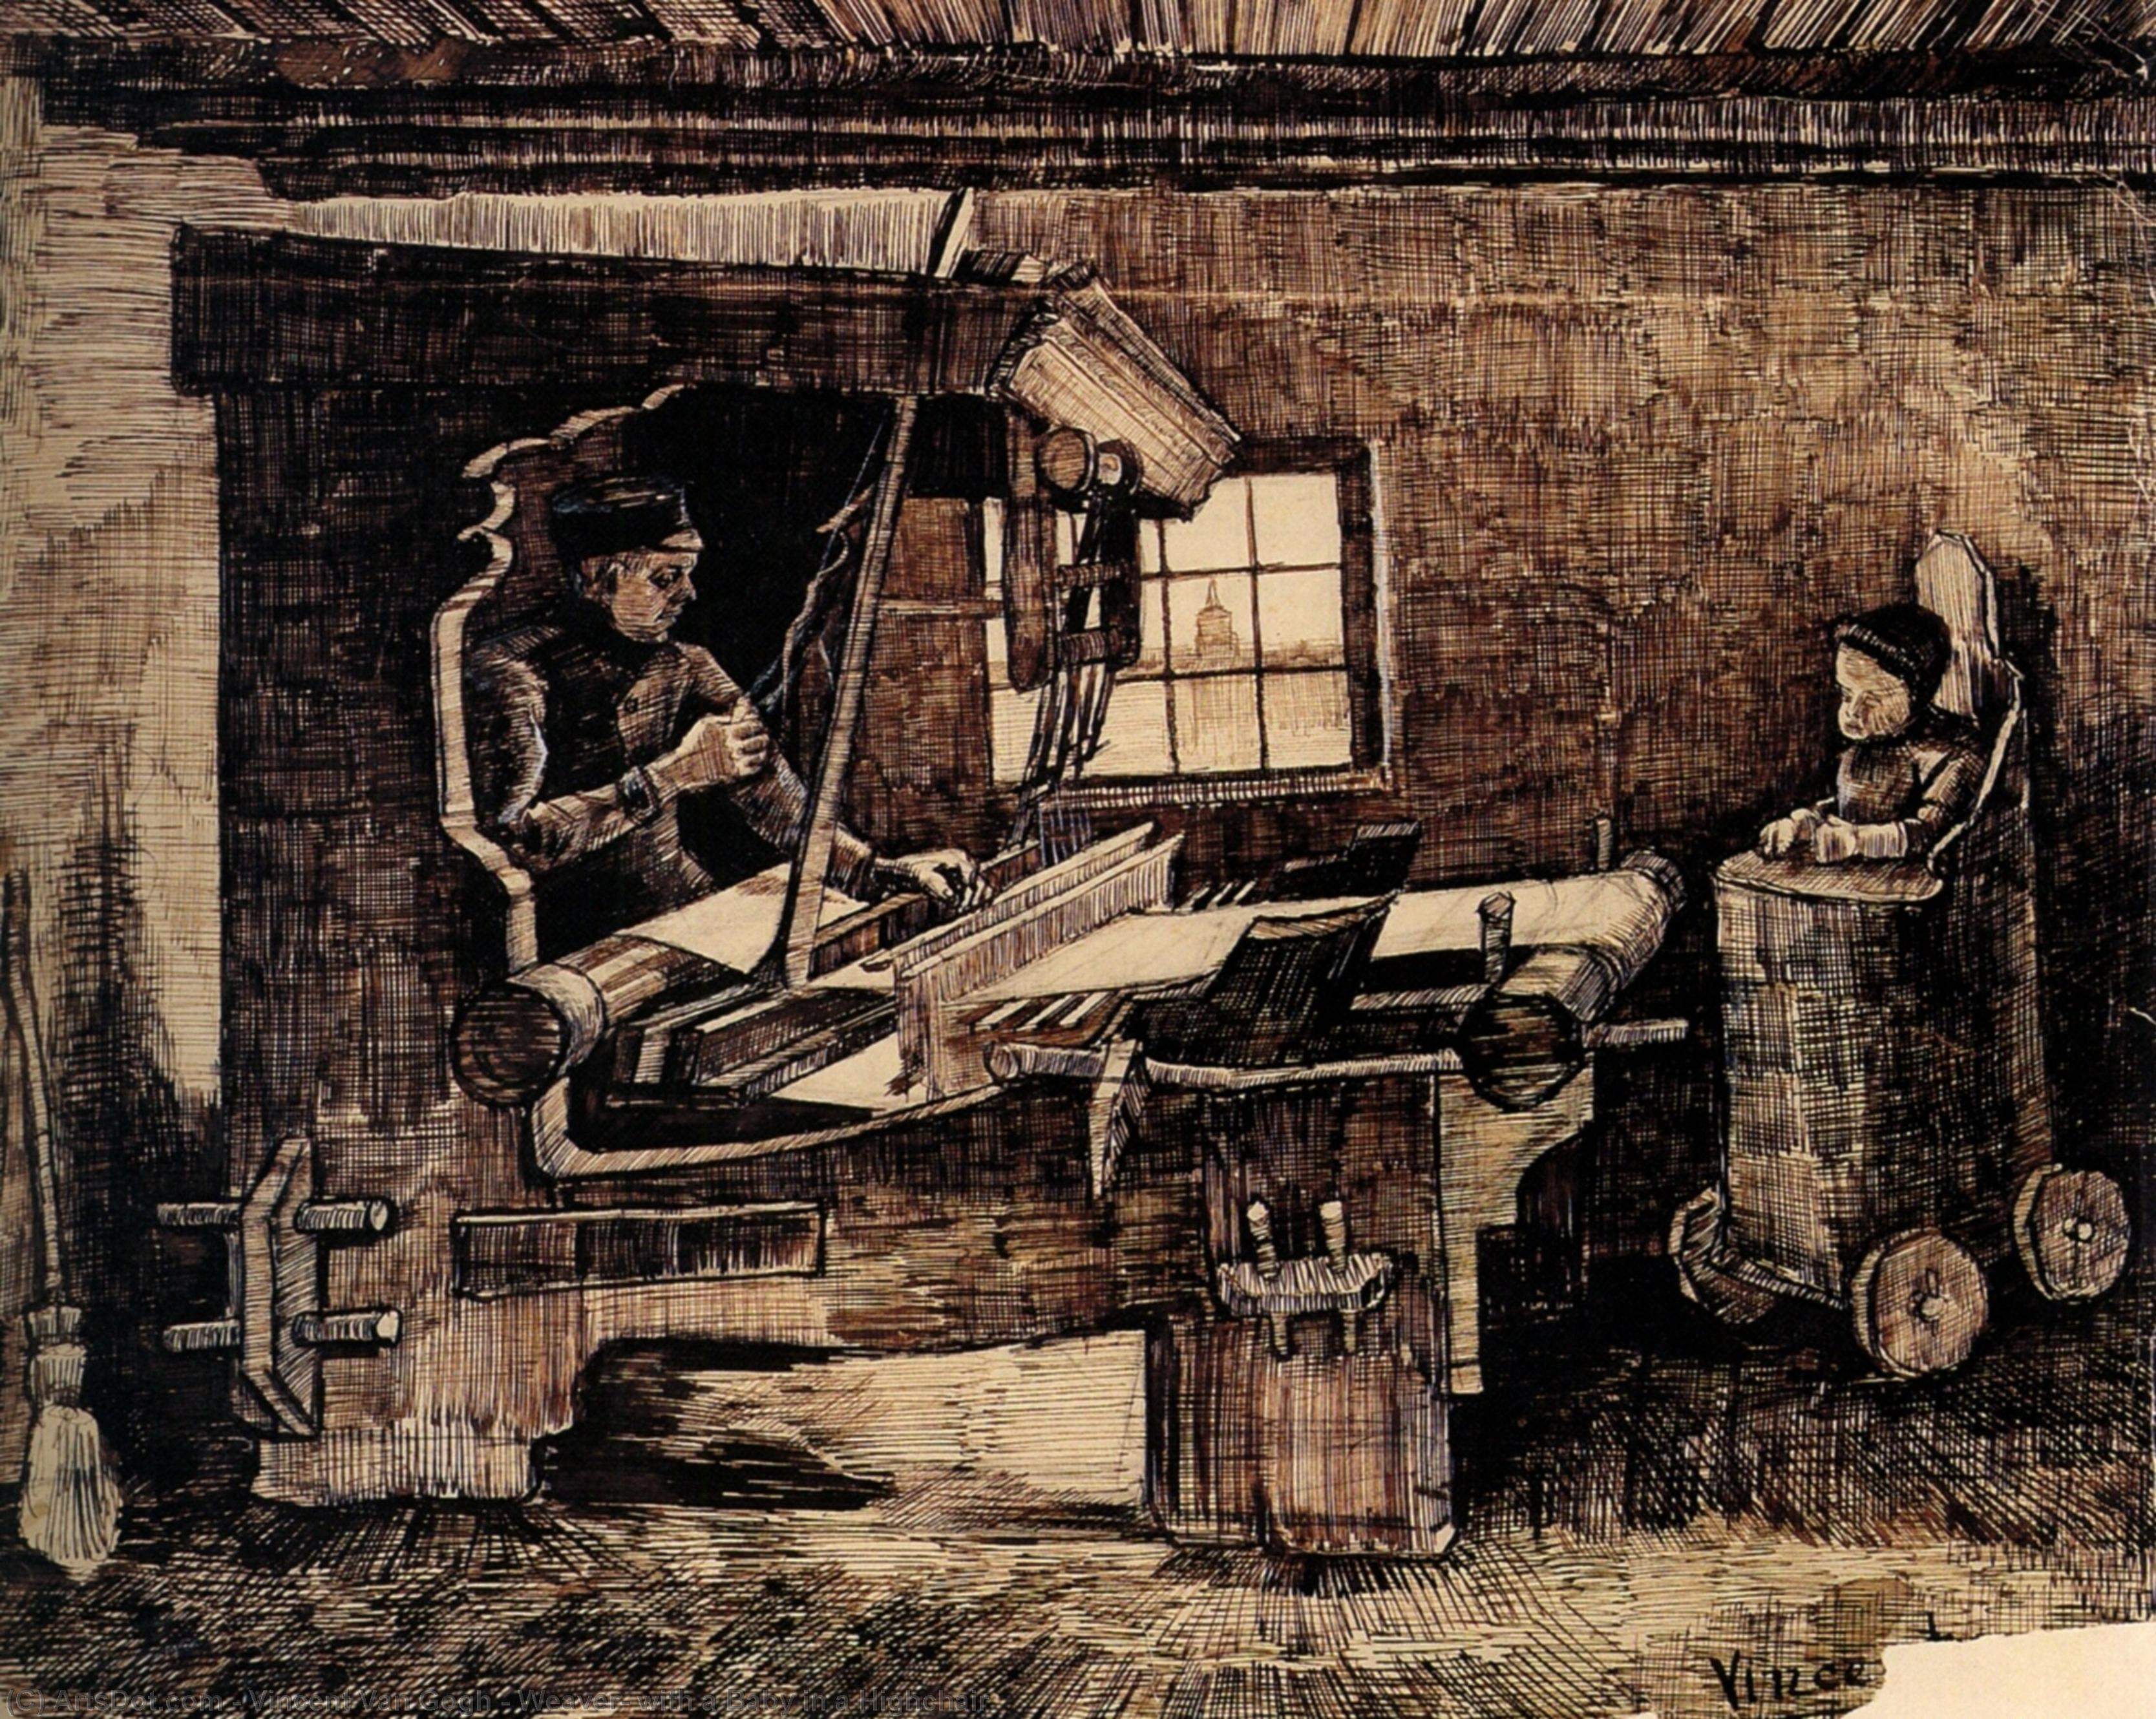 Wikioo.org - The Encyclopedia of Fine Arts - Painting, Artwork by Vincent Van Gogh - Weaver, with a Baby in a Highchair